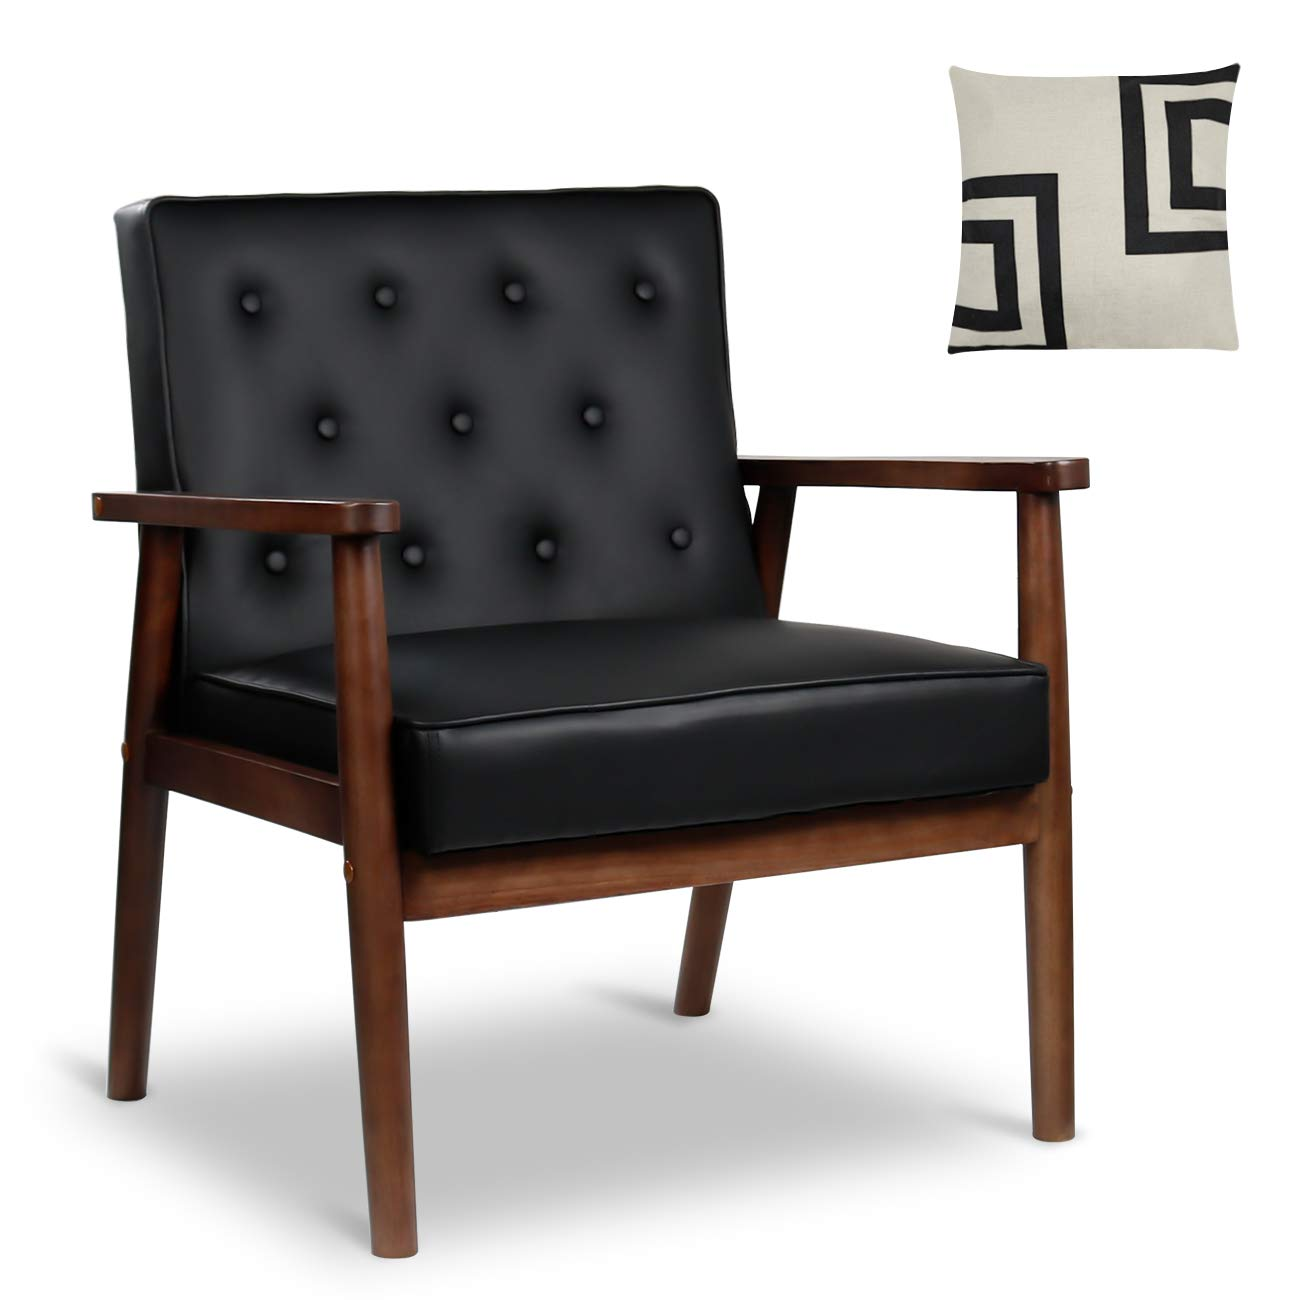 Mid-Century Retro Modern Accent Chair Wooden Arm Upholstered Tufted Back Lounge Chairs Seat Size 24.4 18.3 Deep